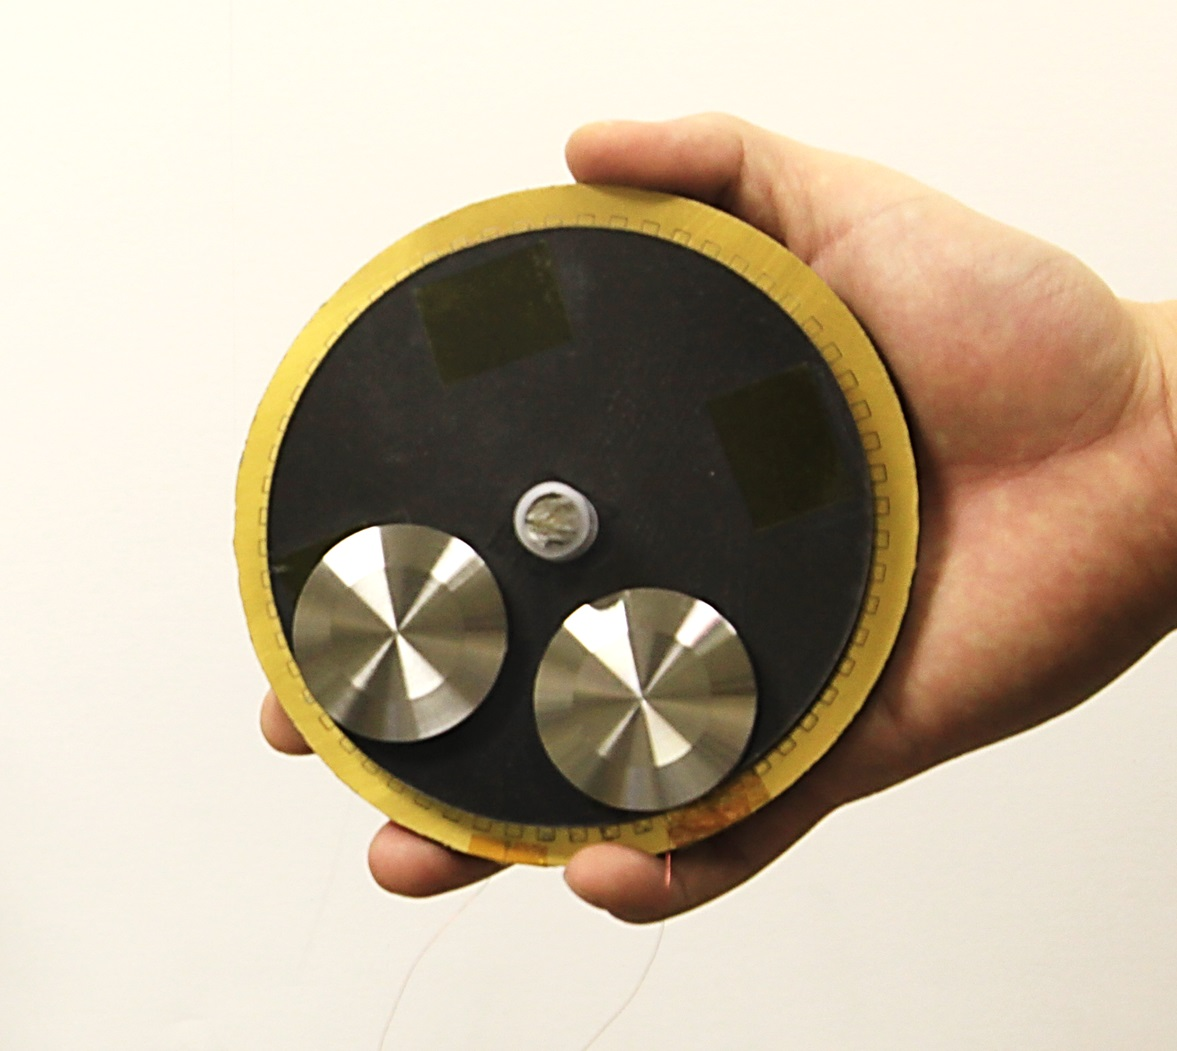 hand-held triboelectric generator for harvesting energy from human ...